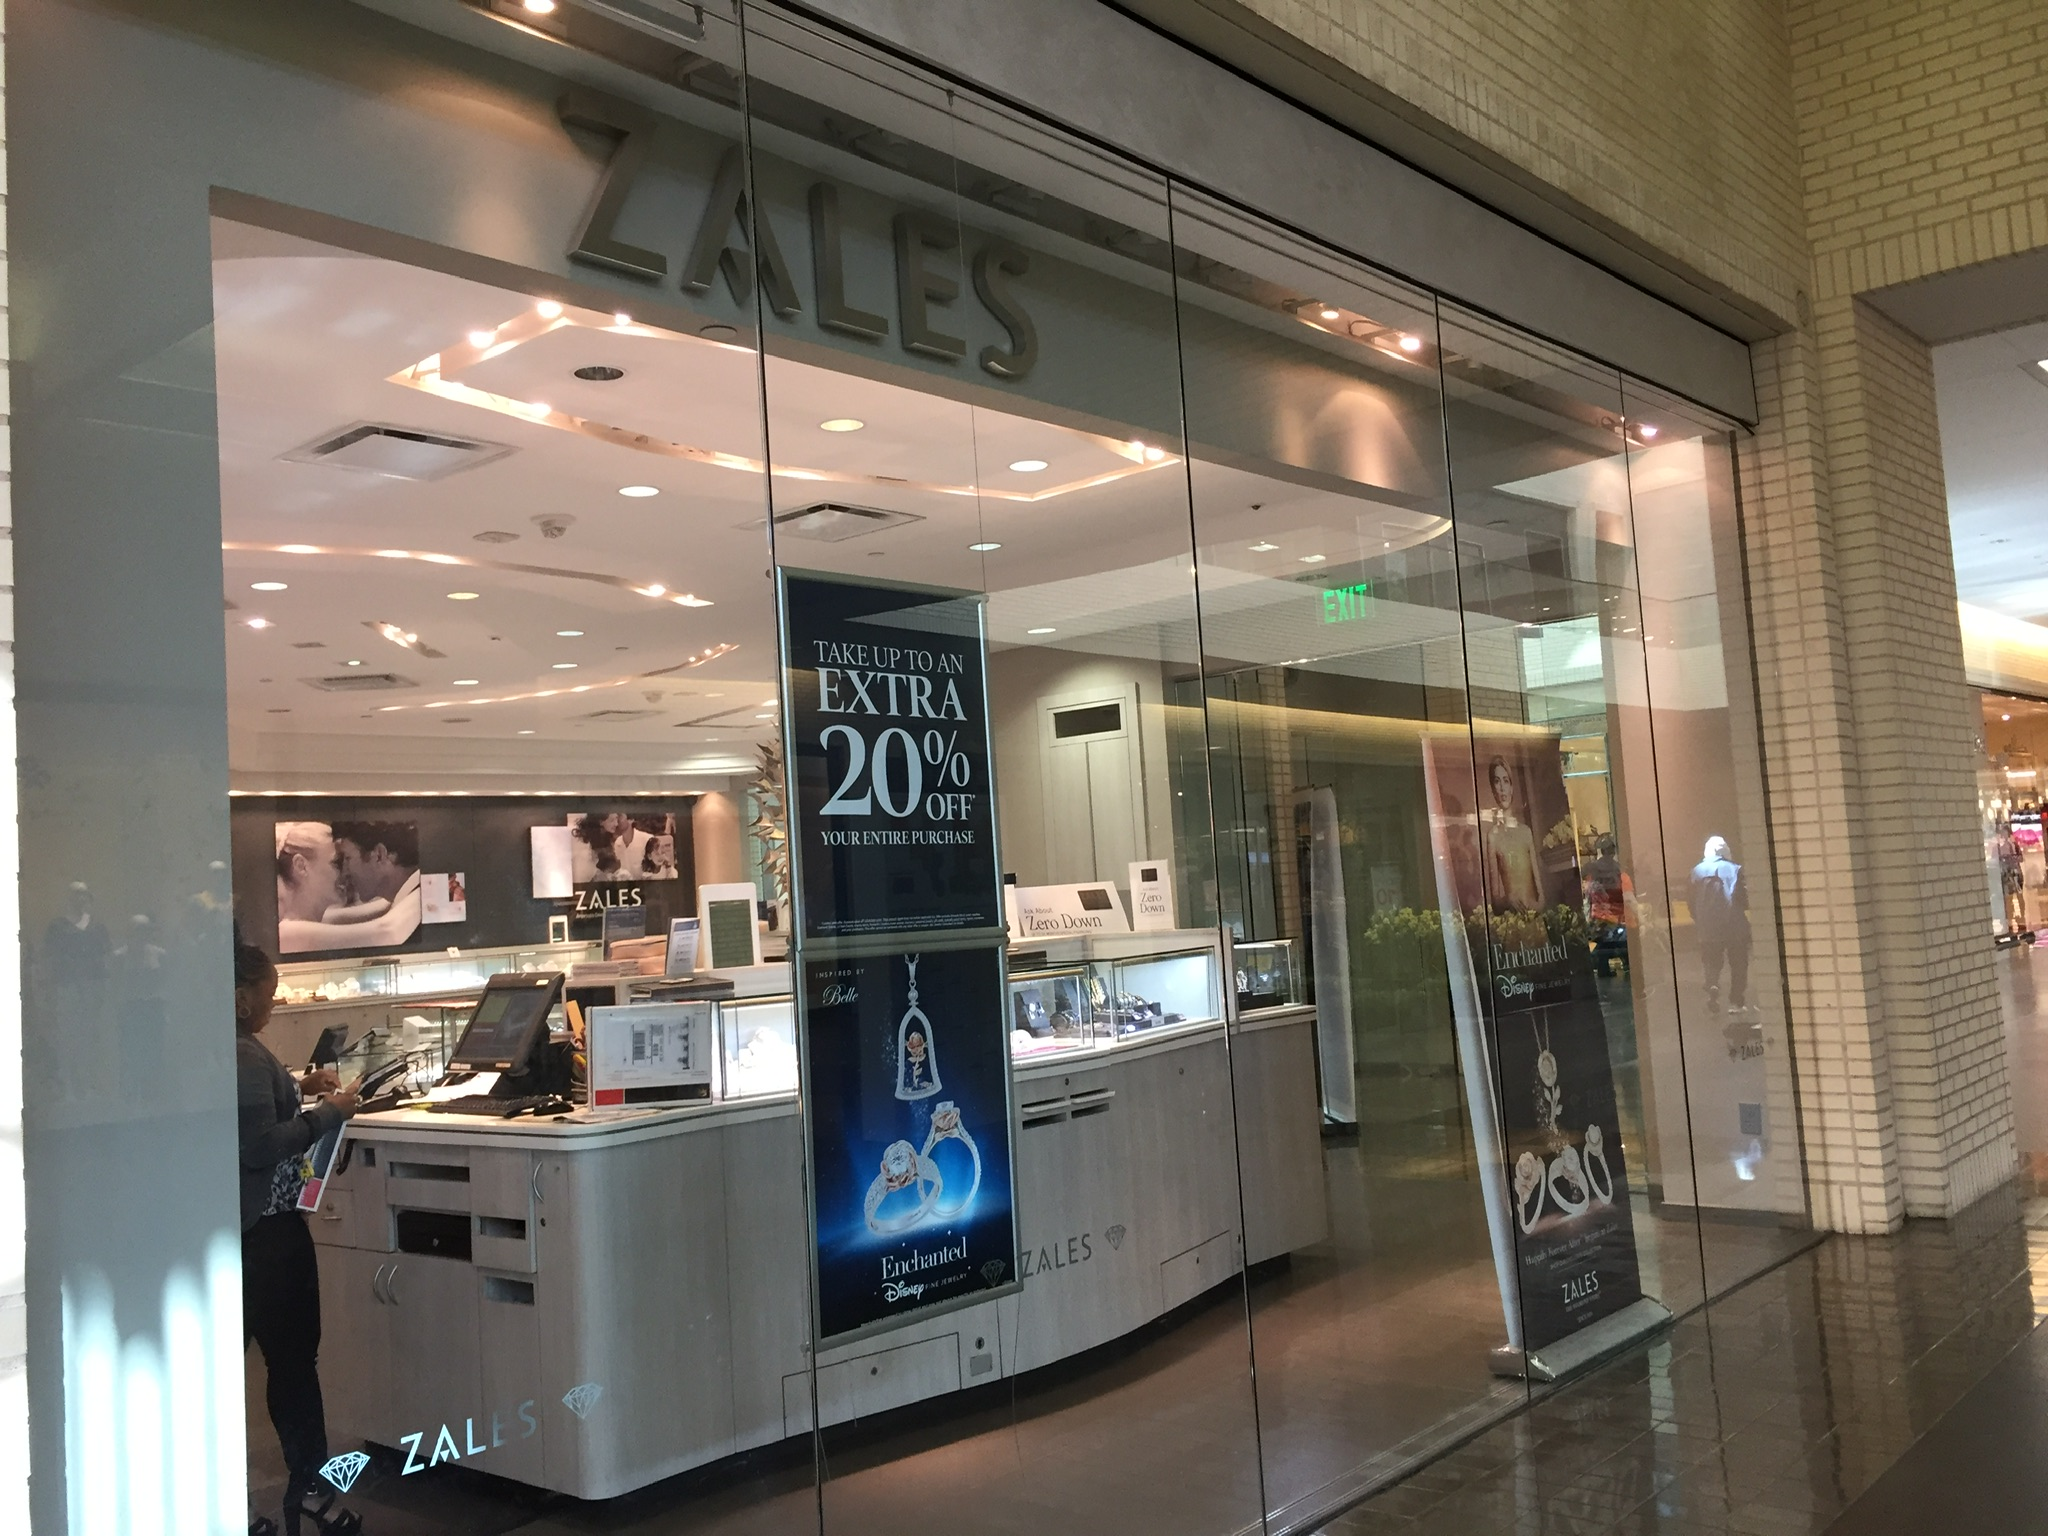 Signet To Permanently Close About 400 Jewelry Stores Including Zales Kay And Jared